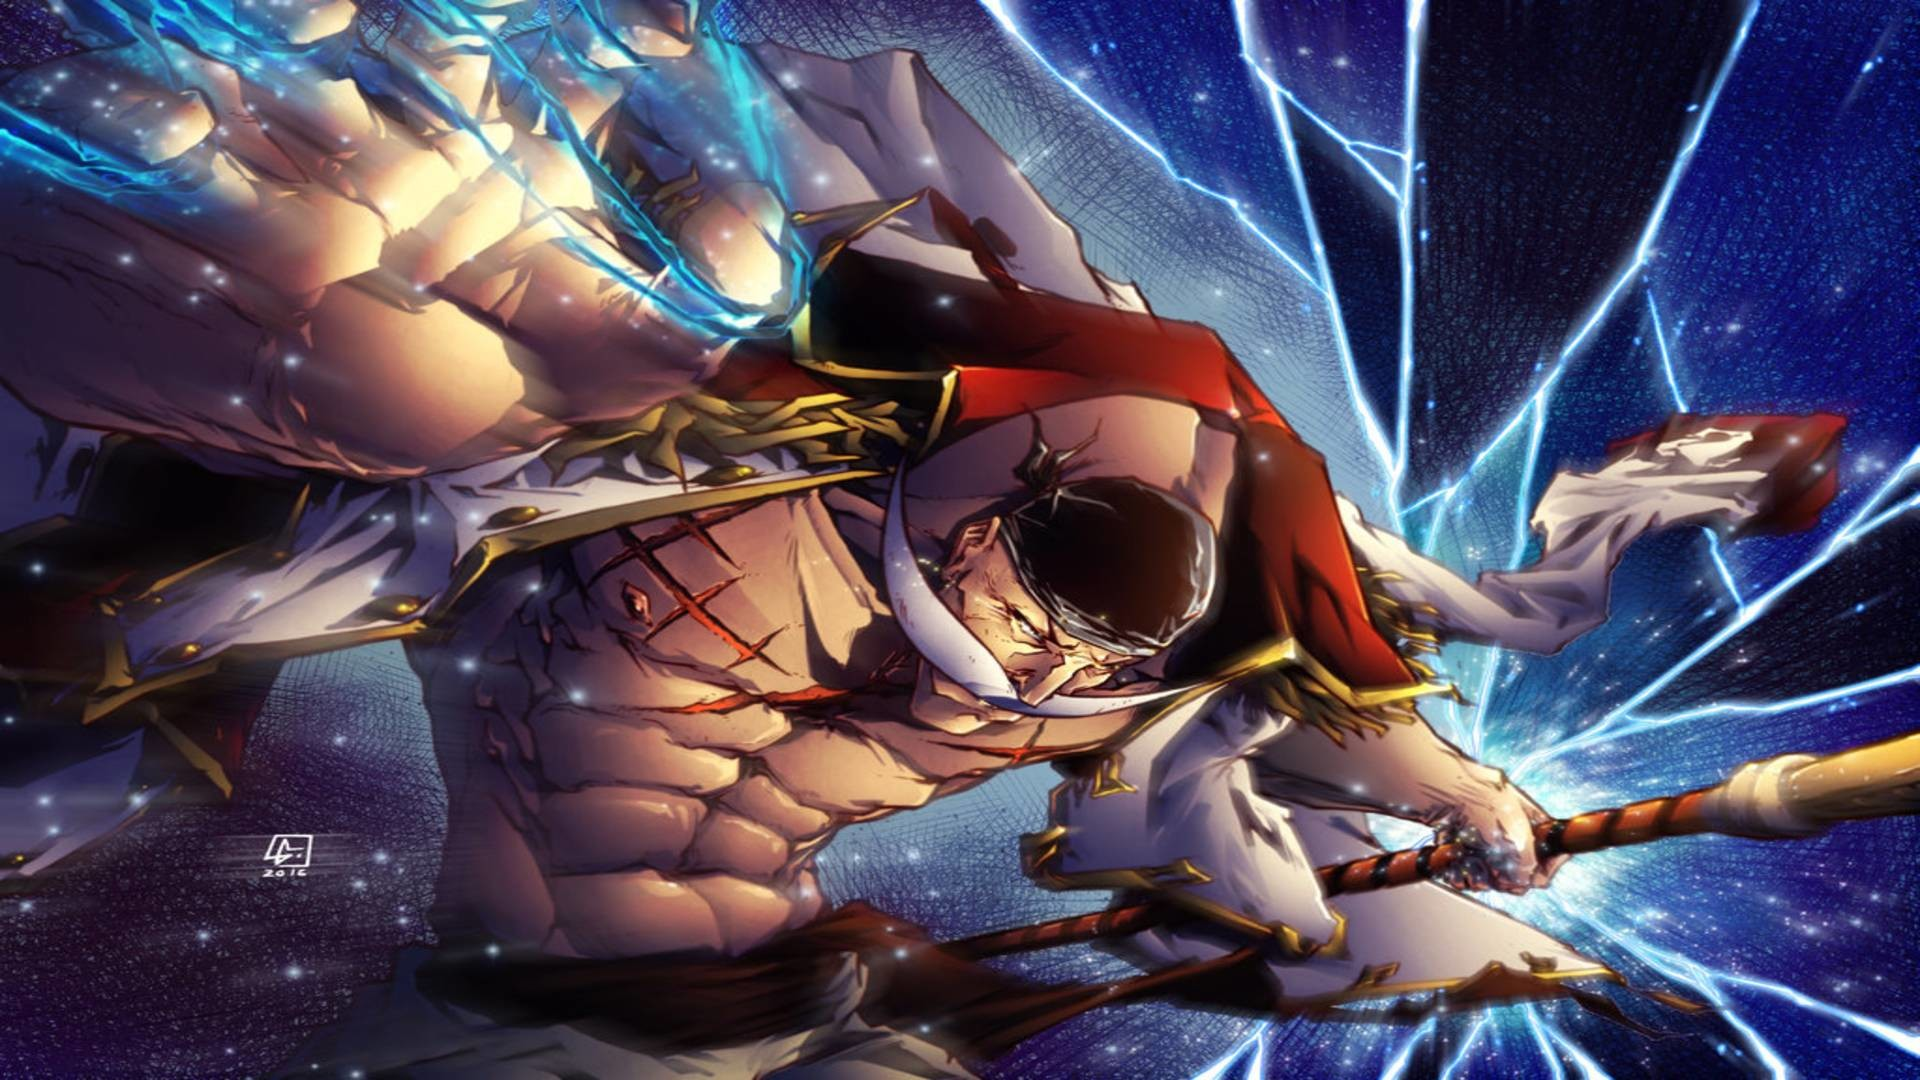 Whitebeard Wallpapers the best 62 images in 2018 1920x1080